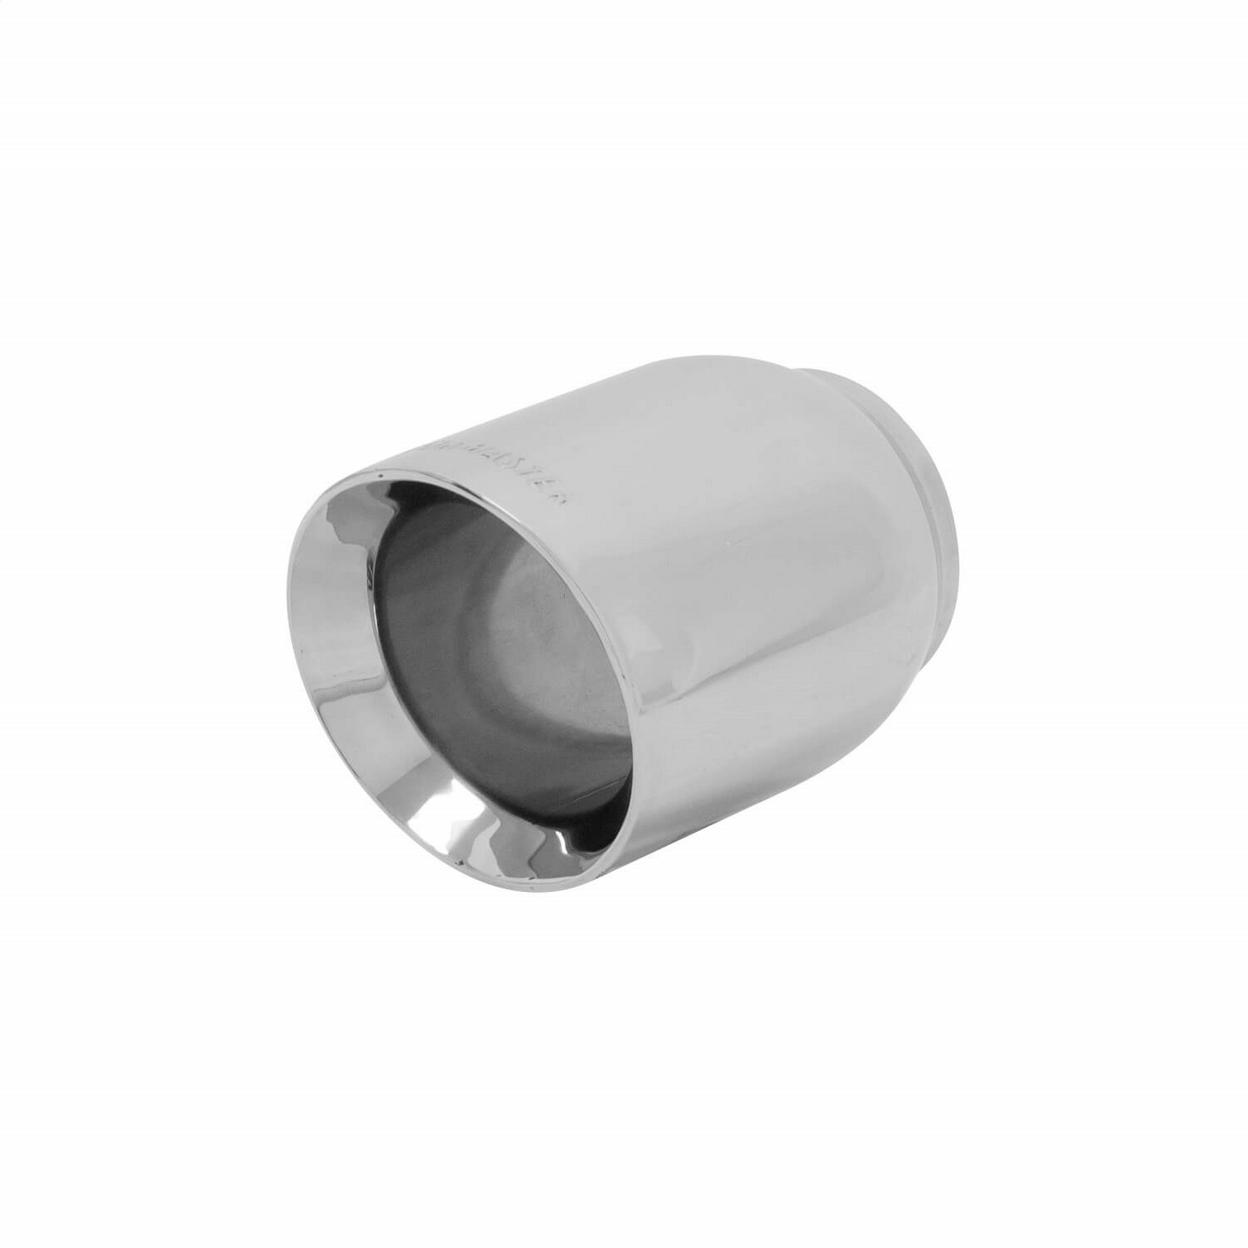 Exhaust Tip - 4.00 in. Round Polished SS - Fits 3.00 in. Tailpipe - Weld on